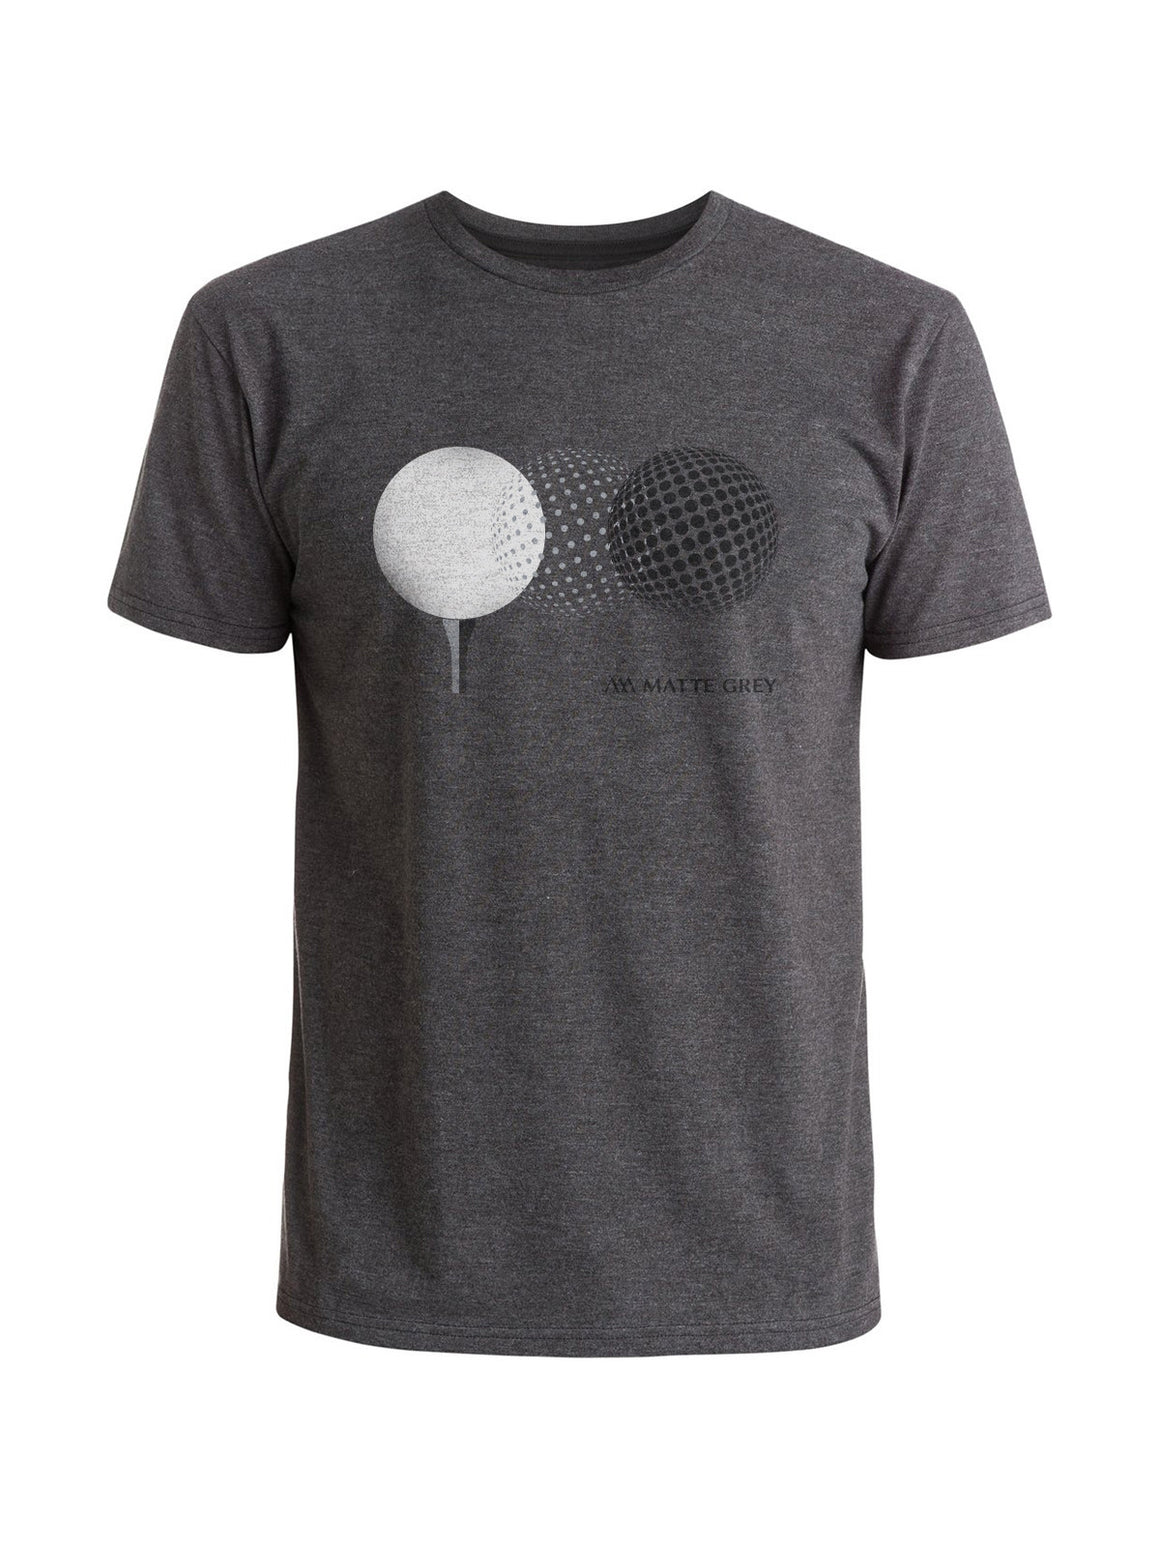 Motion Tee Shirt - Charcoal Heather (Dk Grey / Lt Grey / Stone)